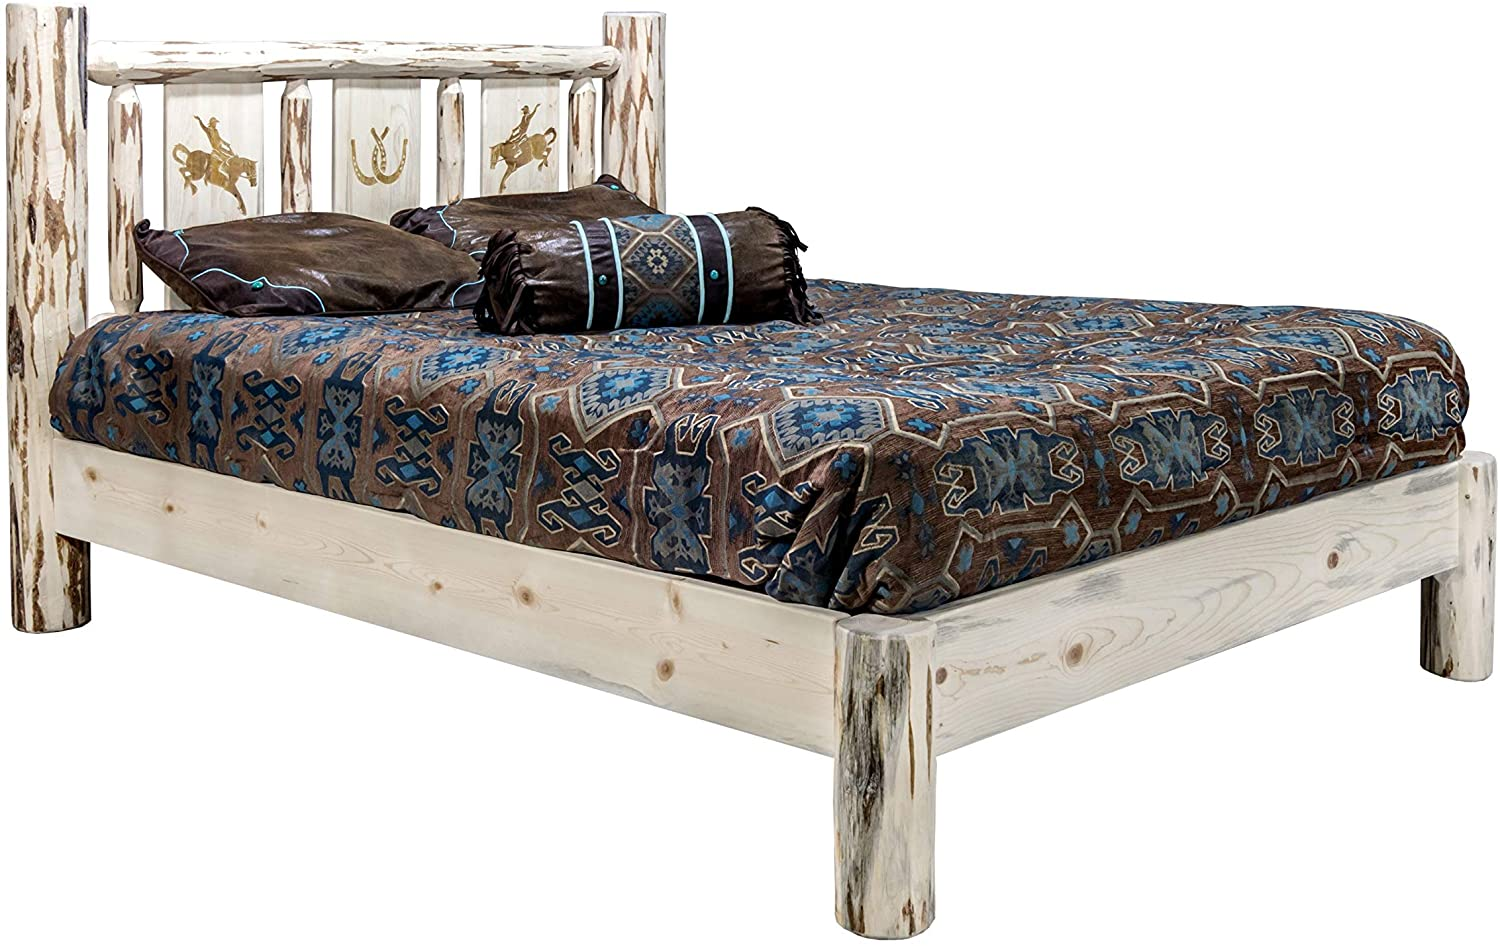 Montana Woodworks Bronc Design Engraved Platform Bed in Natural (Full: 81 in. L x 60 in. W x 47 in. H (199 lbs.))